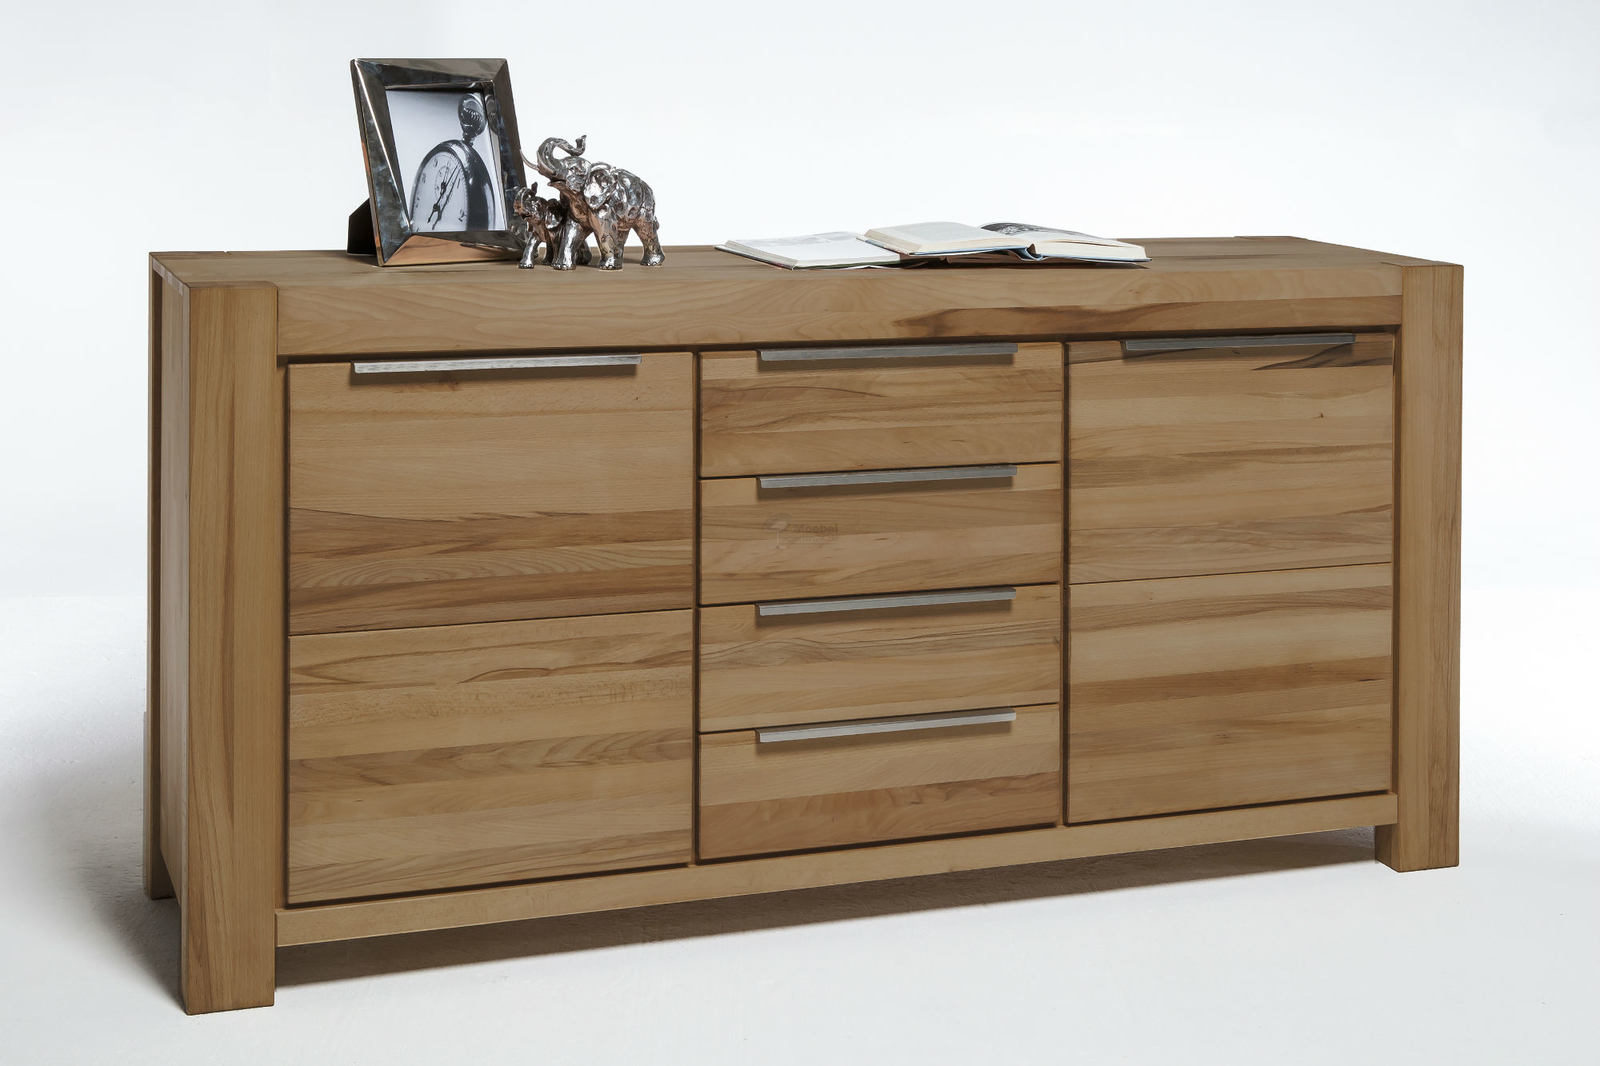 sideboard nena massivholz mit 4 schubladen von elfo g nstig bestellen skanm bler. Black Bedroom Furniture Sets. Home Design Ideas